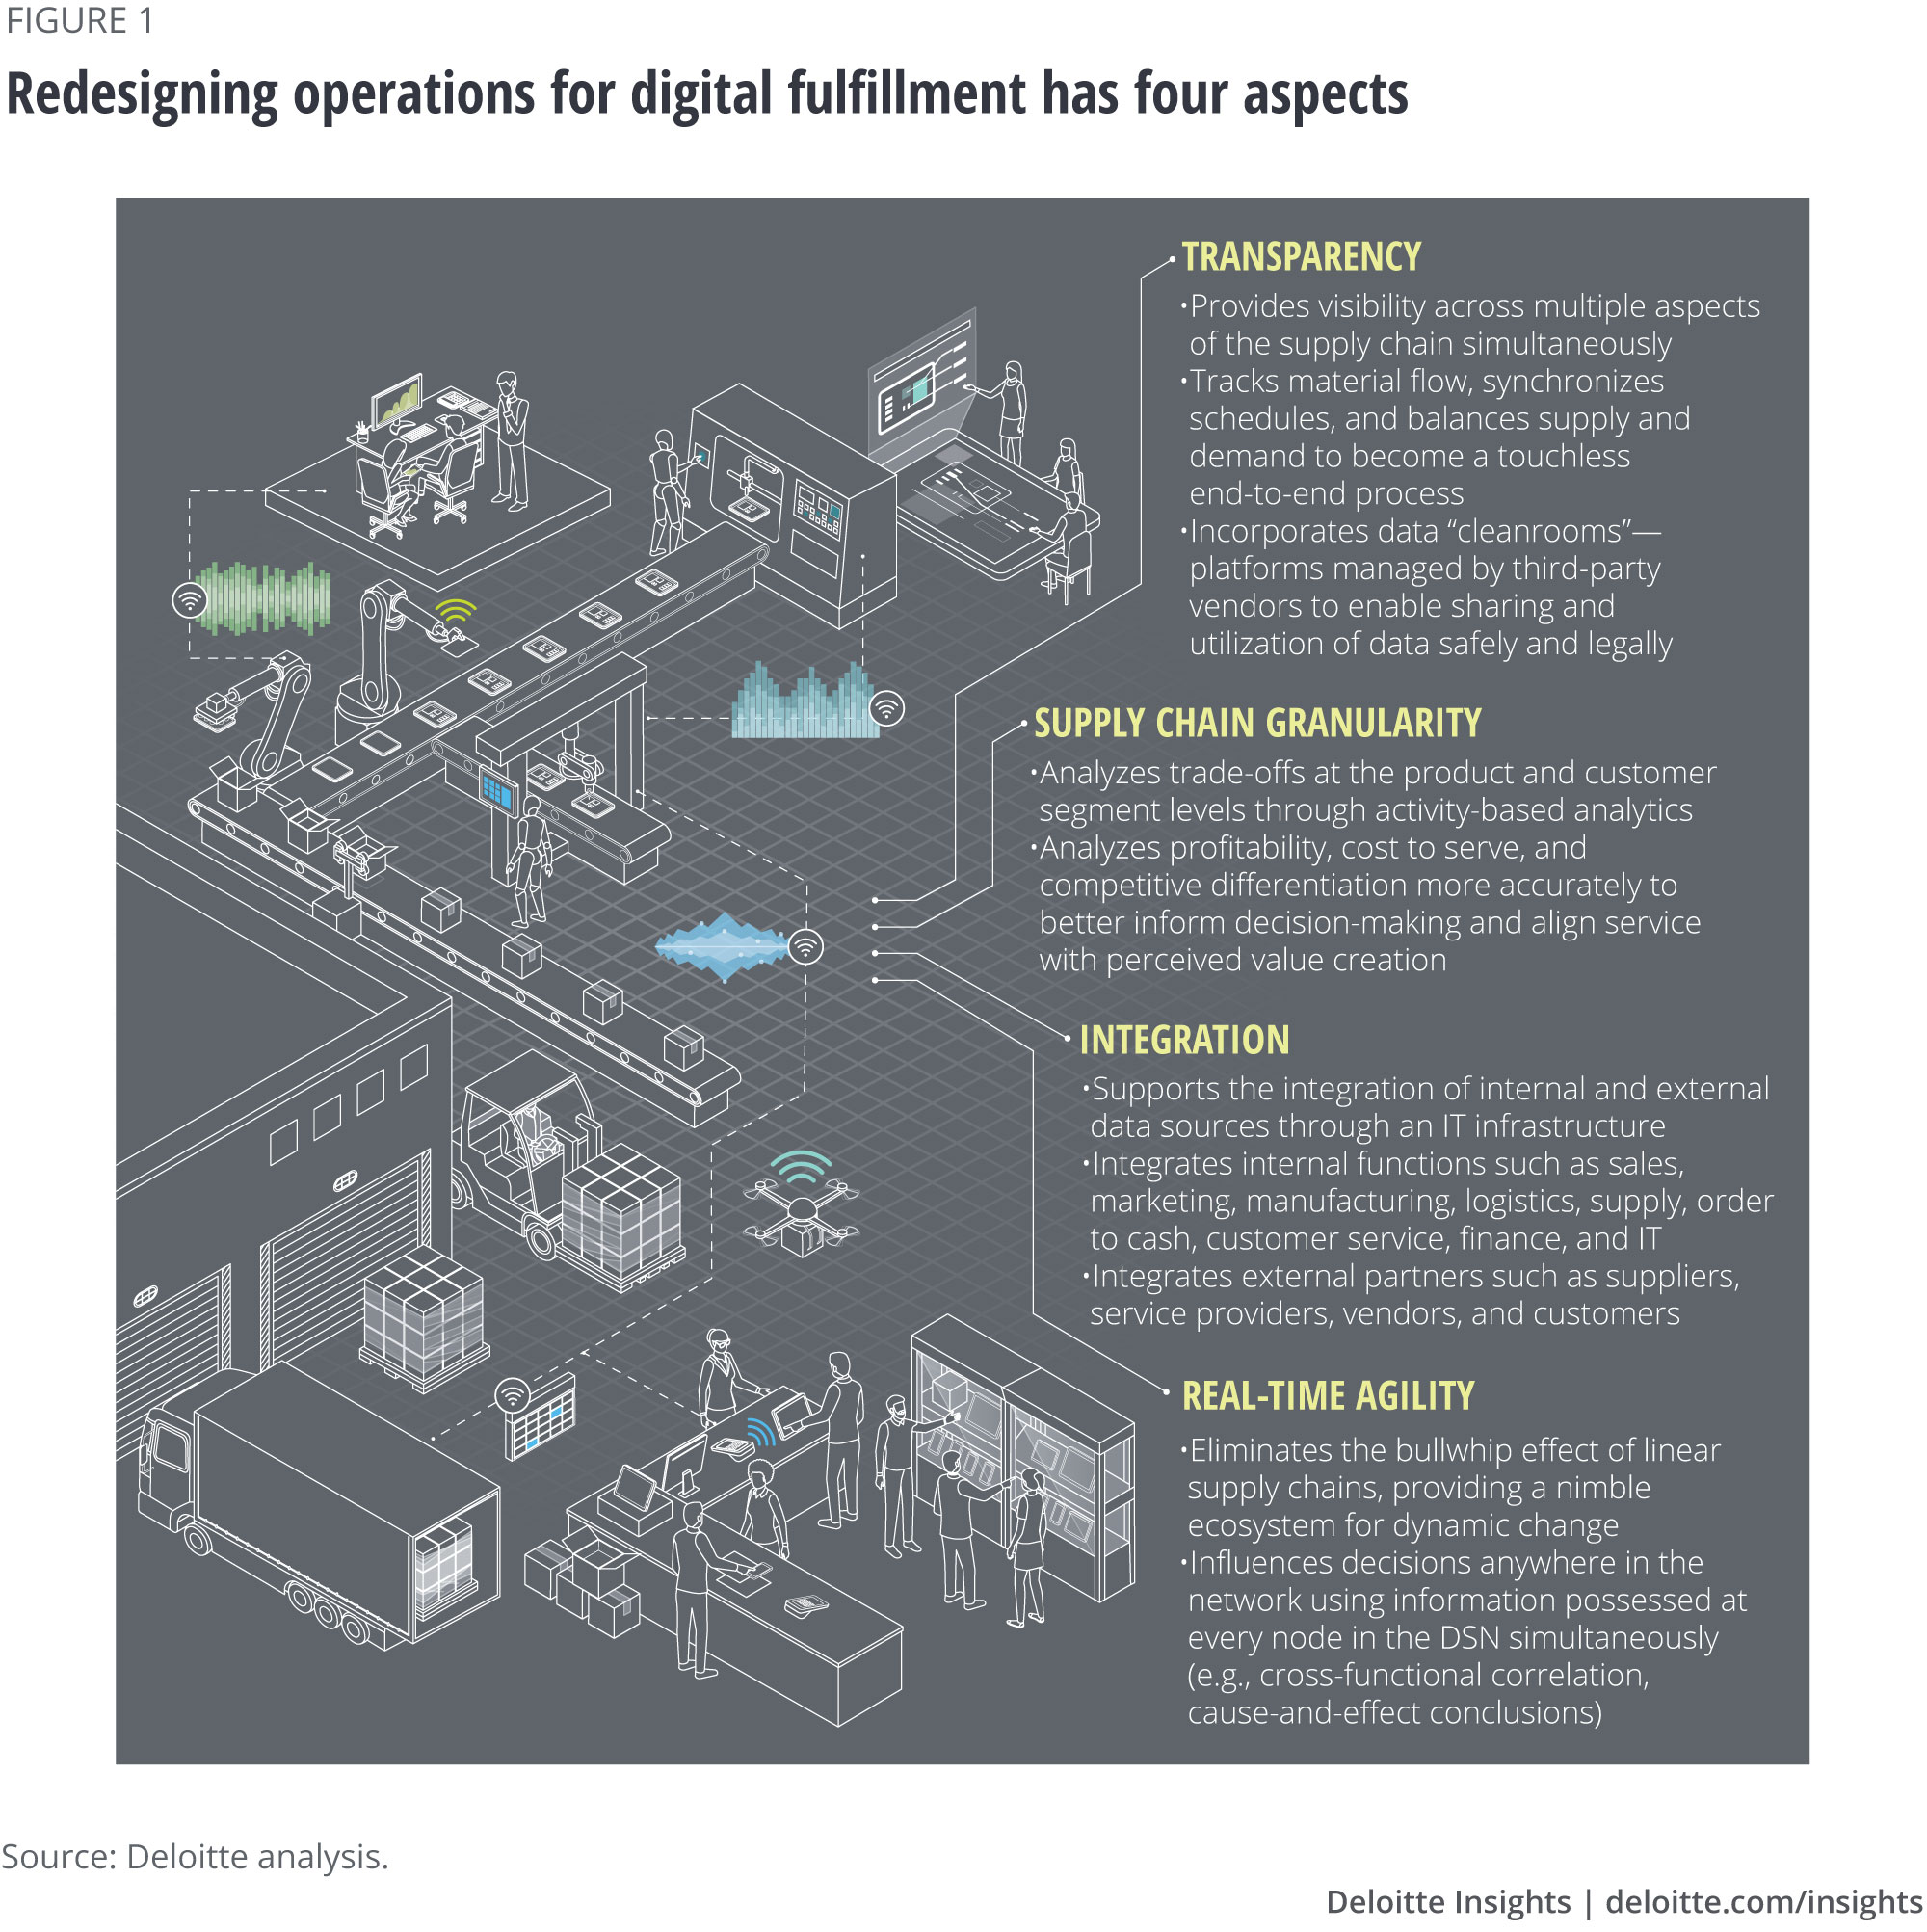 Unlocking end-to-end digital fulfillment | Deloitte Insights